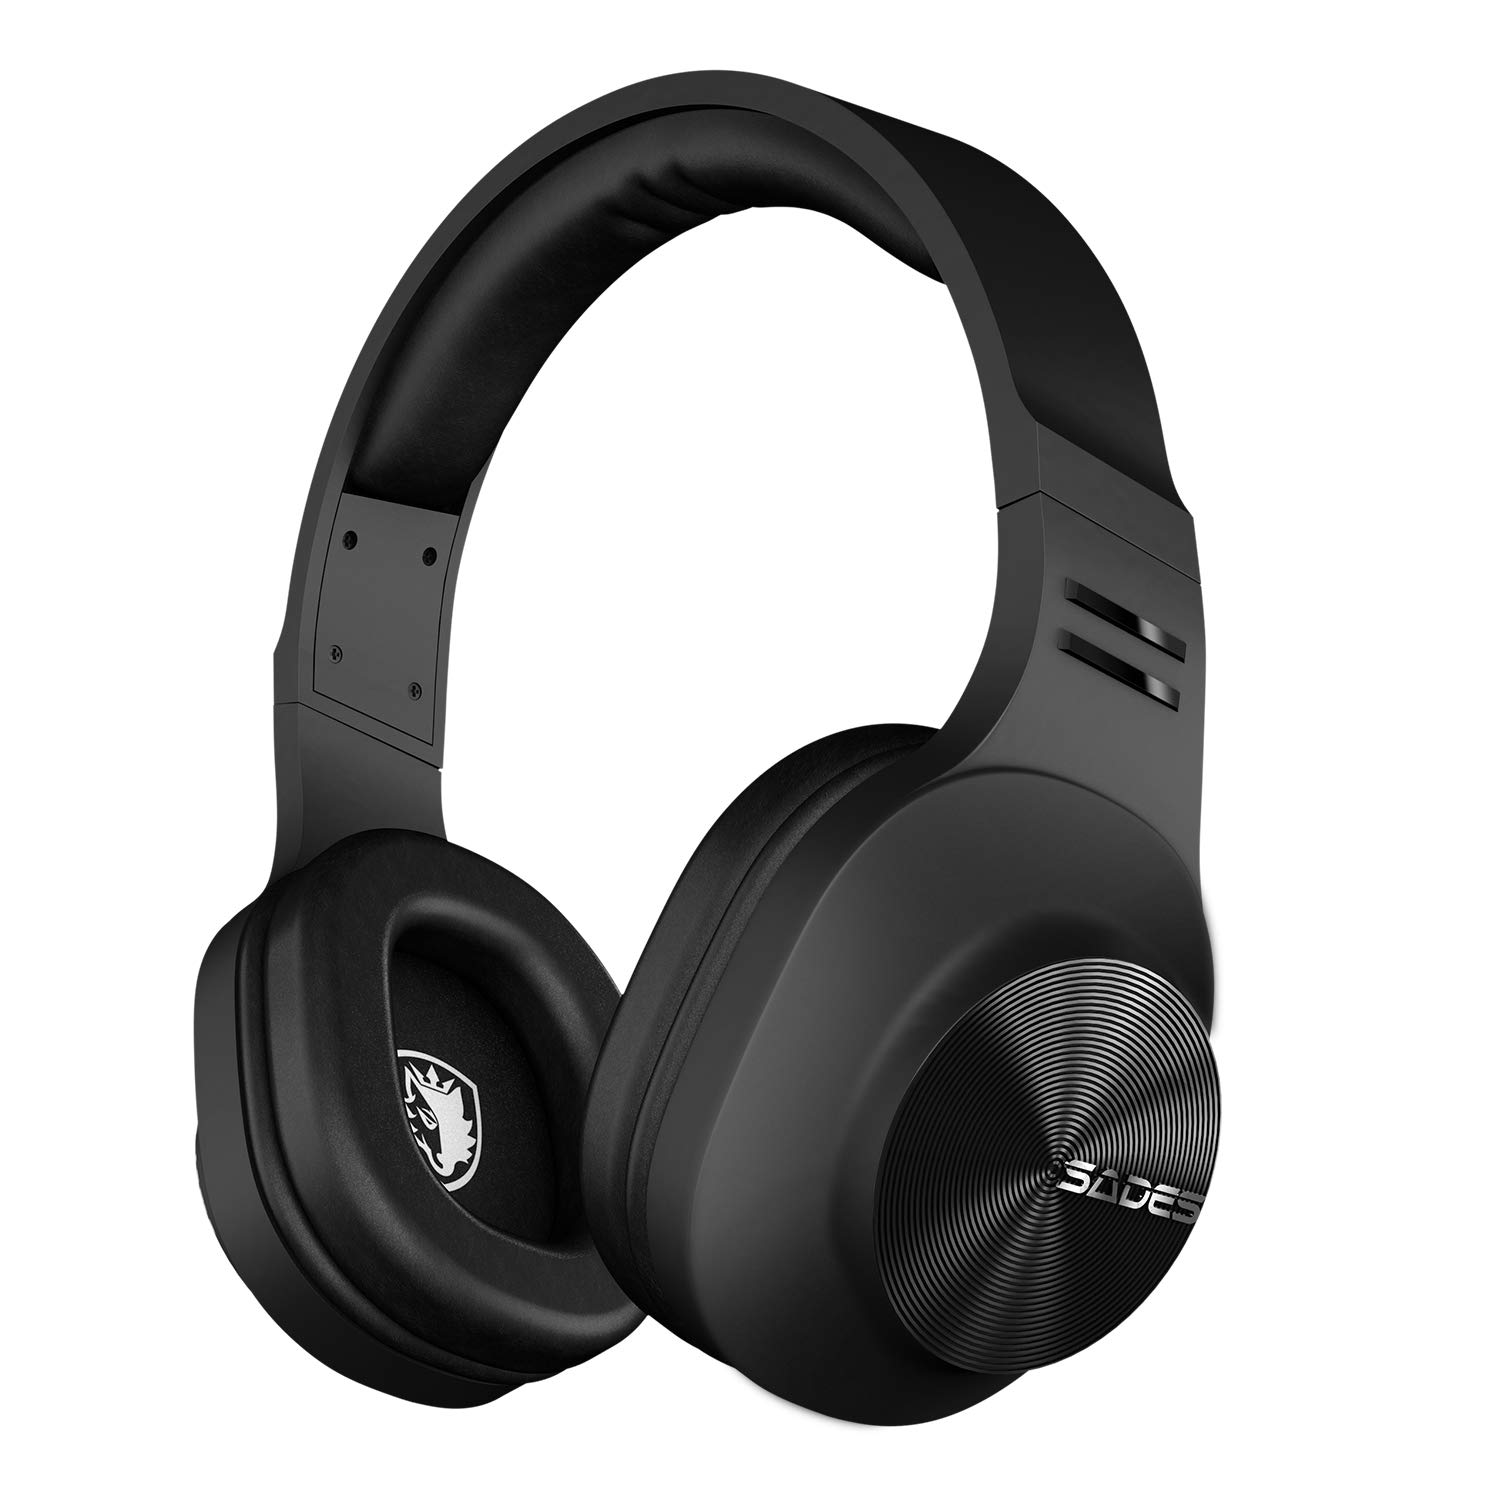 SADES D808 Bluetooth Headphone Over Ear, Wireless Headphones with mic for Music/Cell Phone/TV/PC(Blcak Headphone)